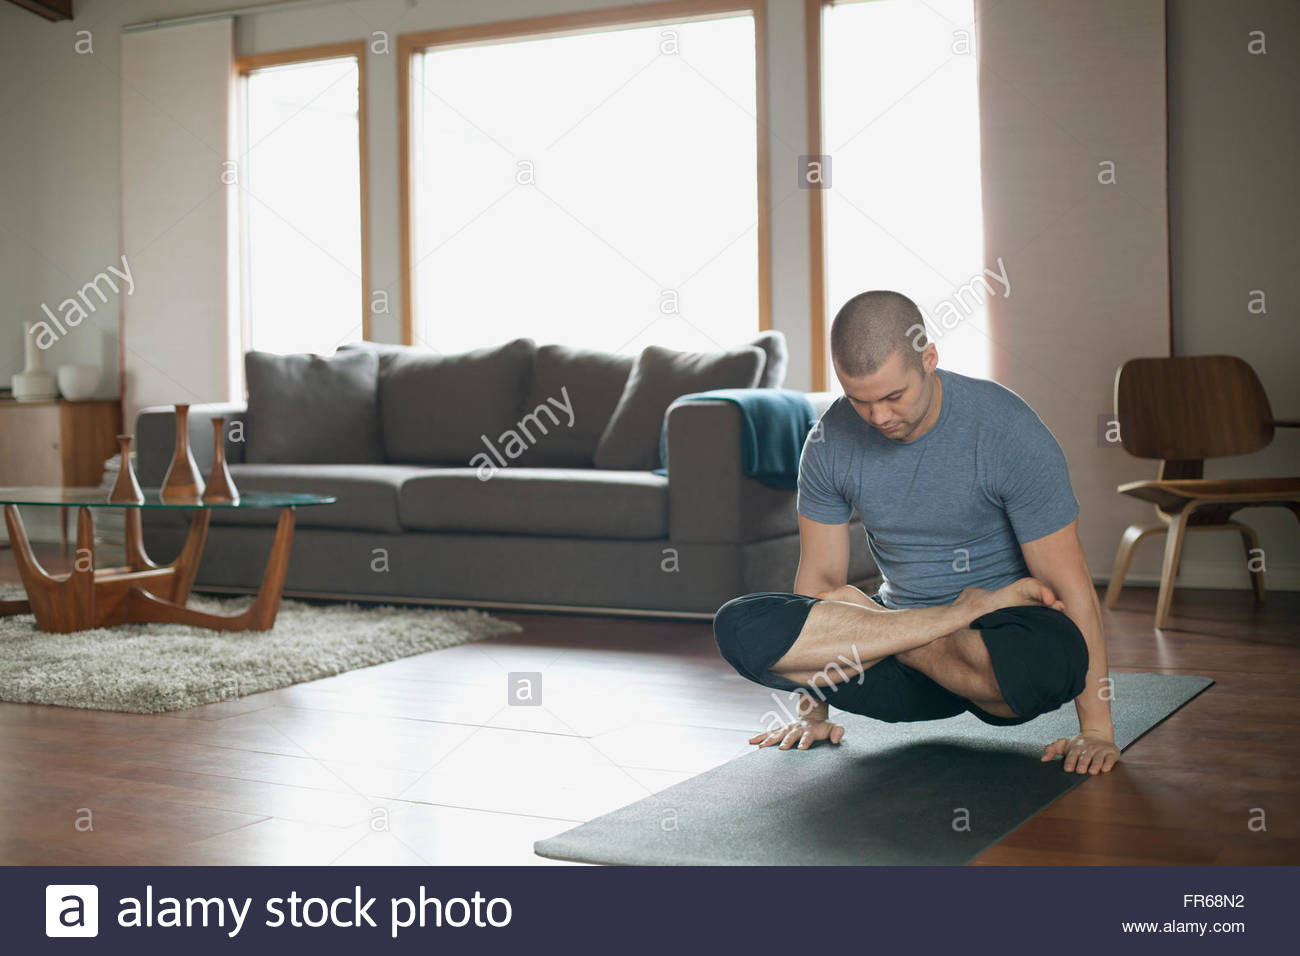 man doing yoga poses at home Stock Photo